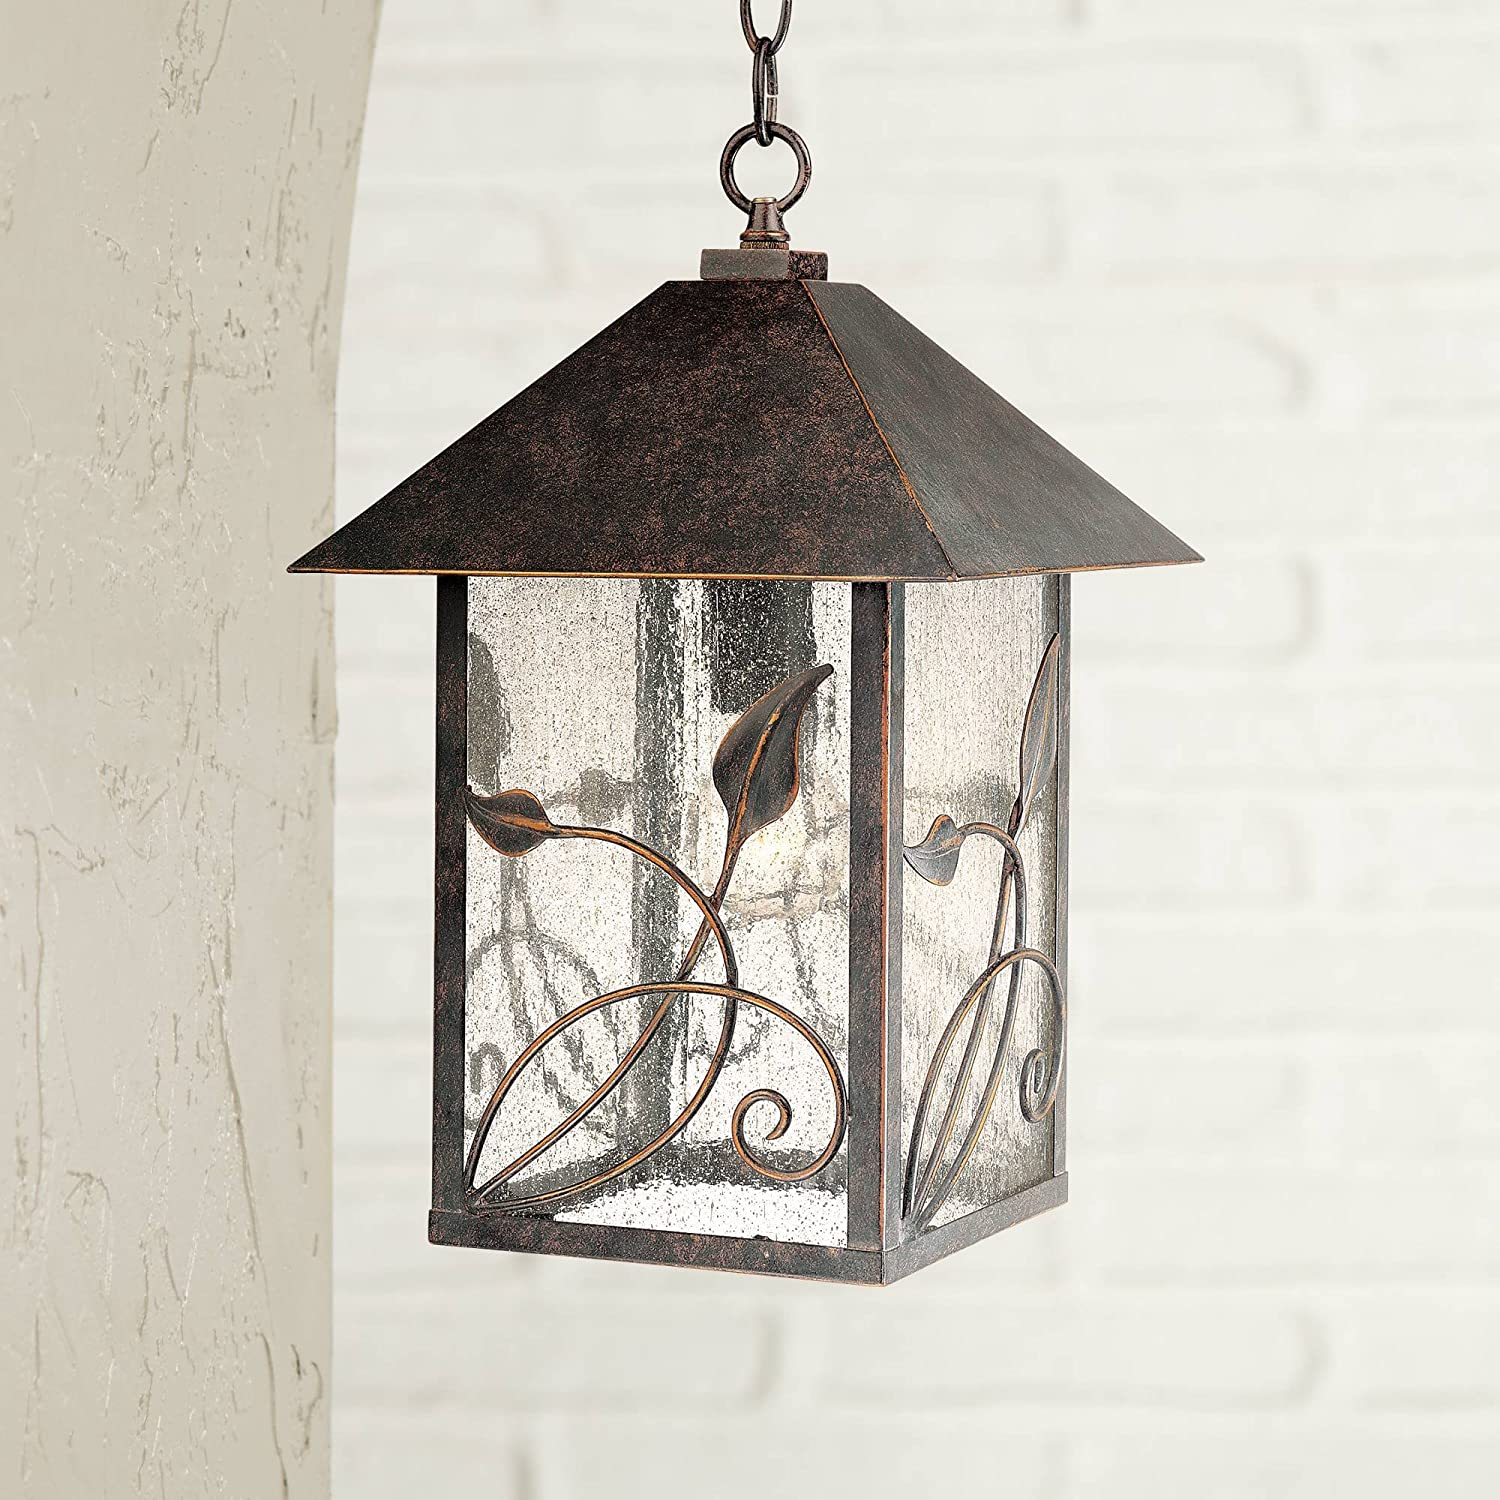 French Garden Country Cottage Outdoor Ceiling Light Hanging Bronze Leaf Pattern 15